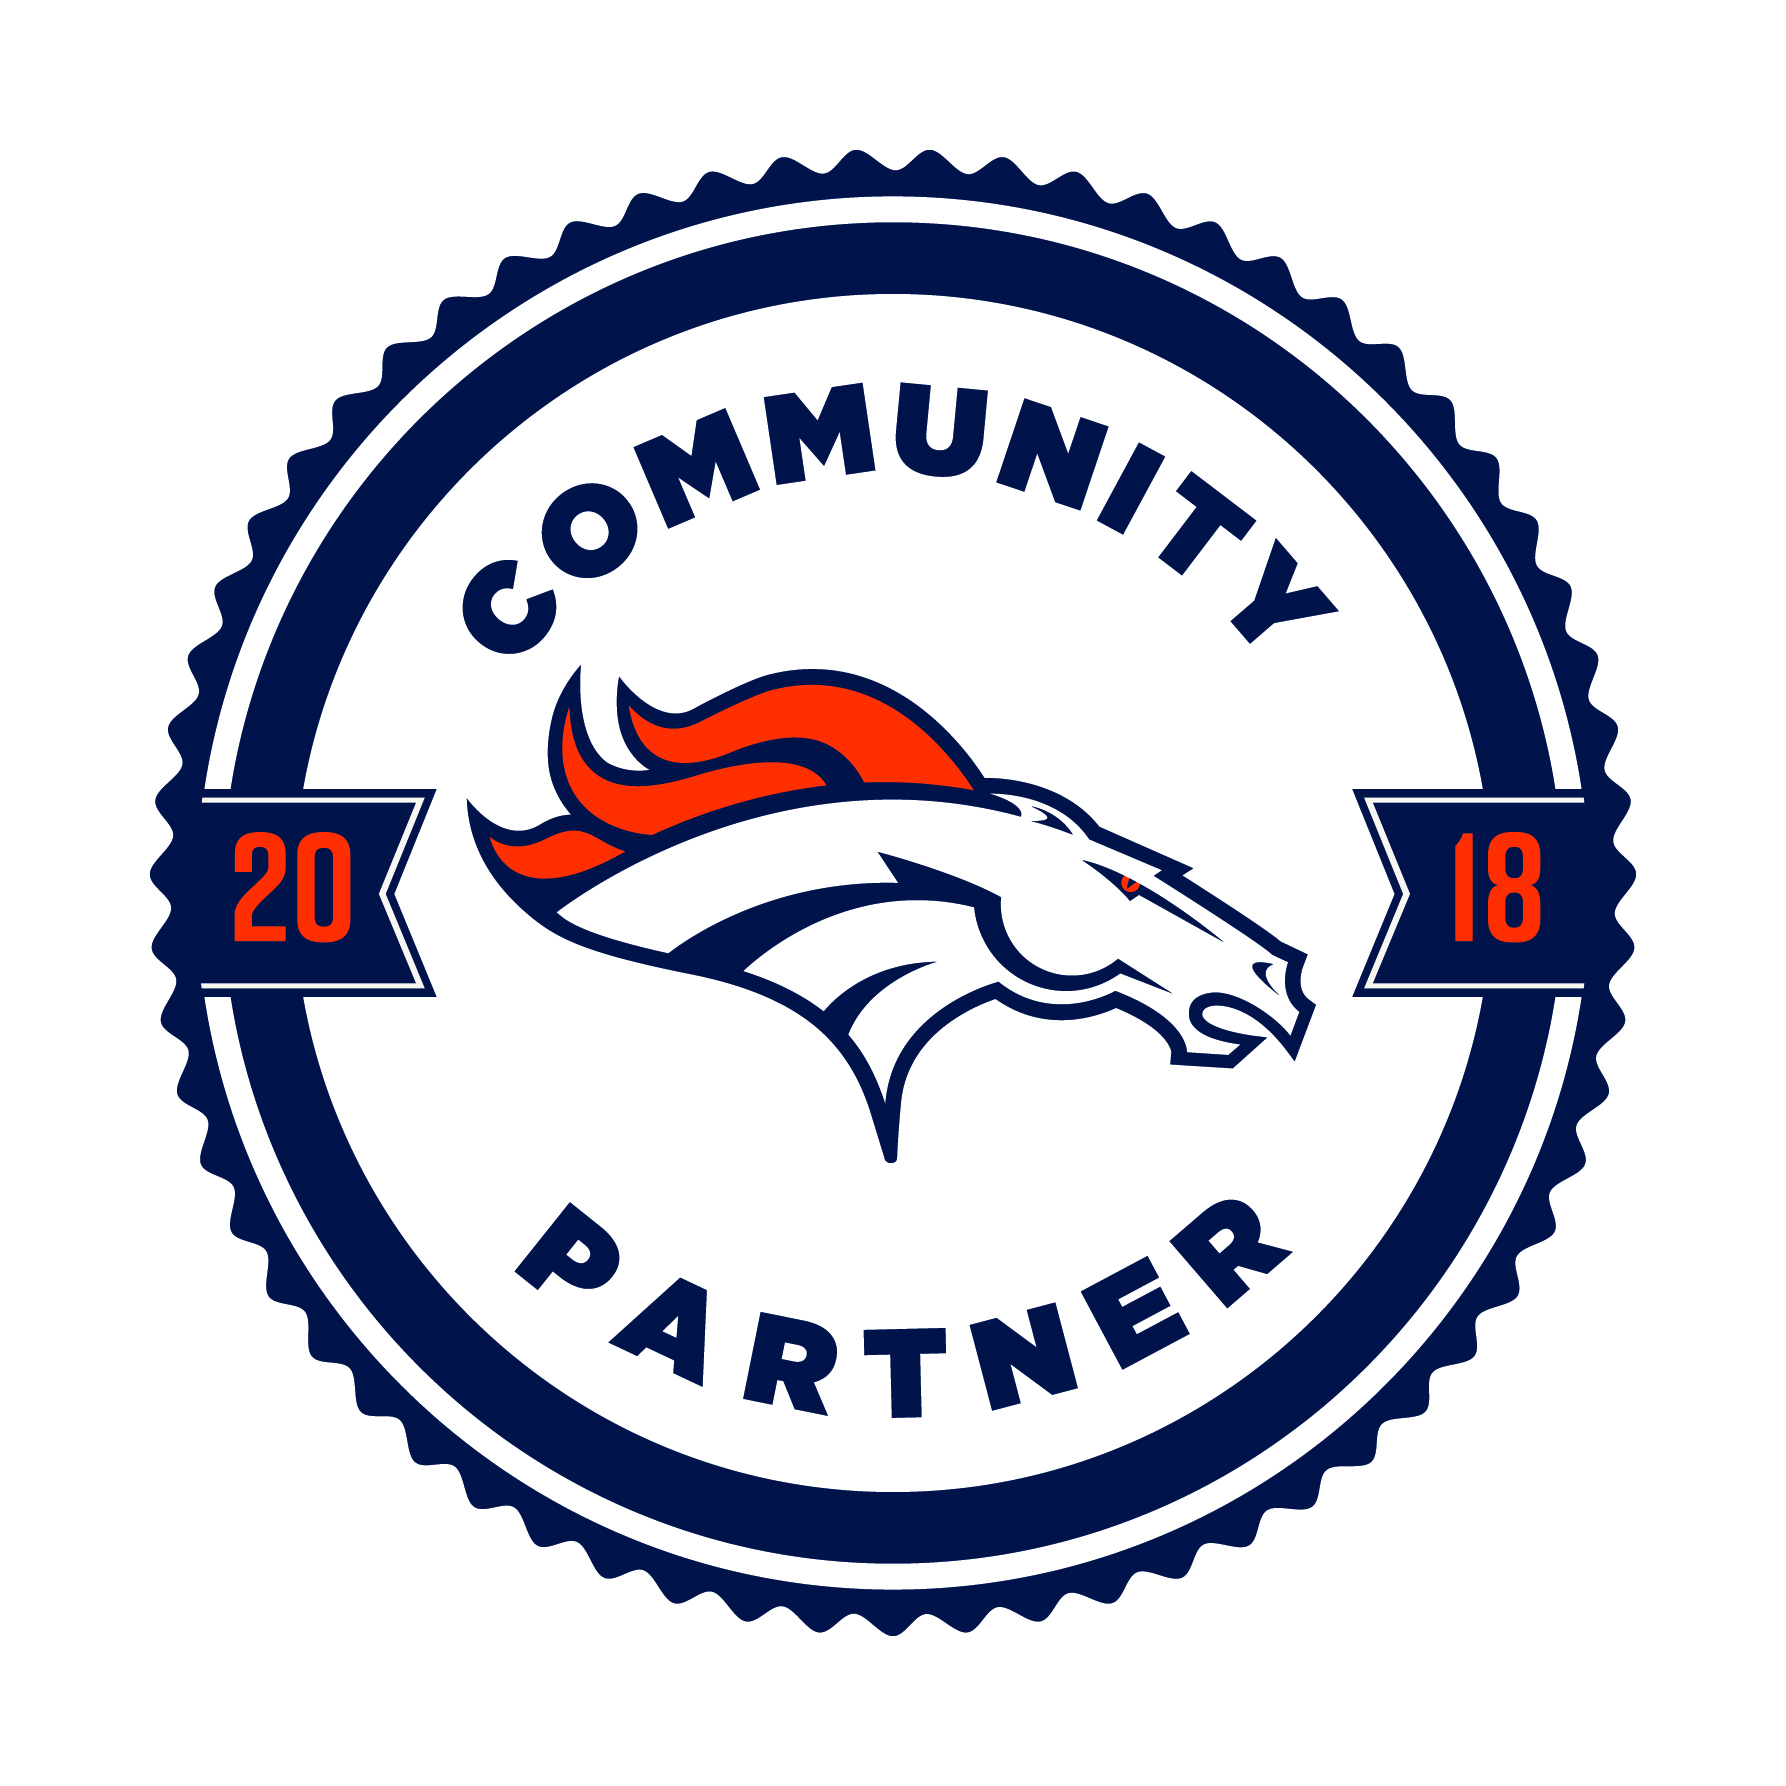 D Broncos (Community Partner)